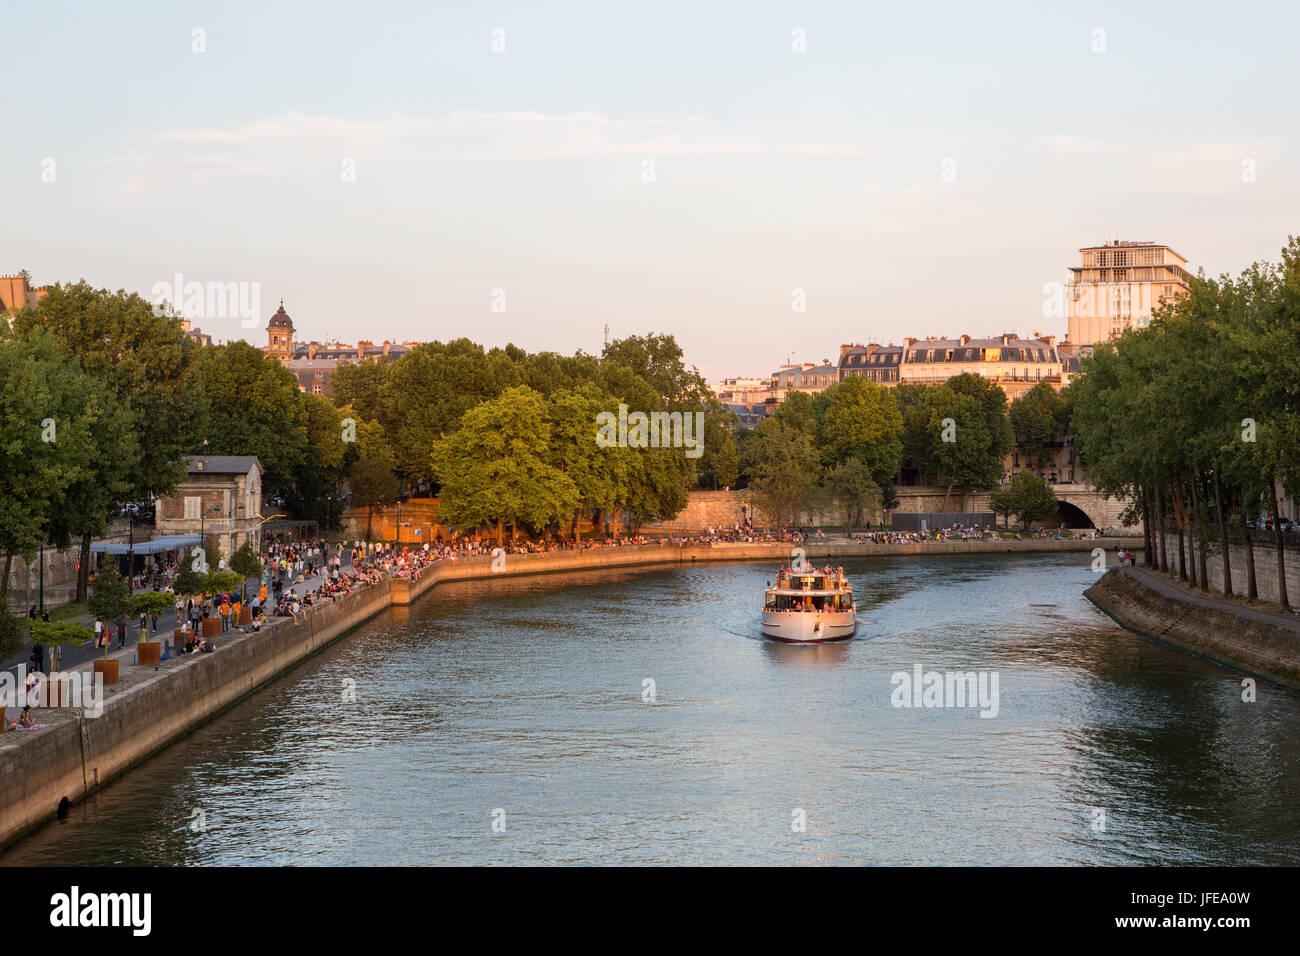 A passenger boat with tourists cruises along the Seine River while Parisians sit along the river banks. - Stock Image